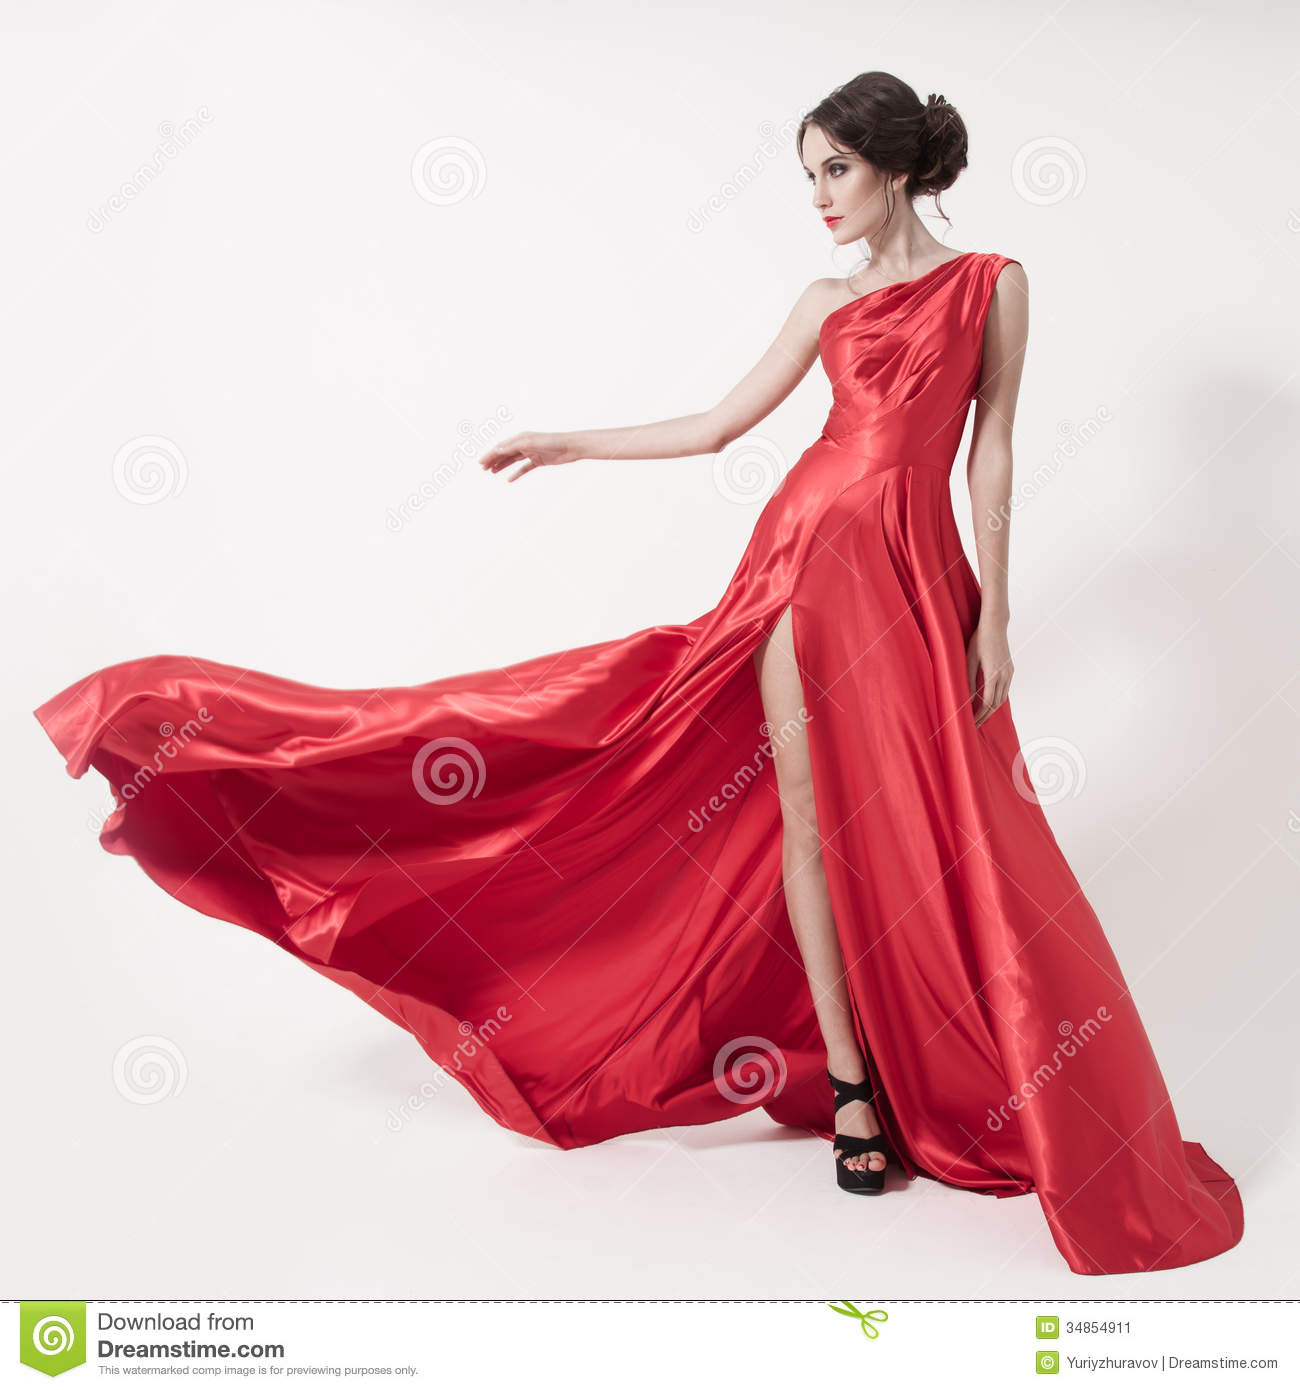 Young Woman In A Red Dress Stock Photo - Image: 42565402